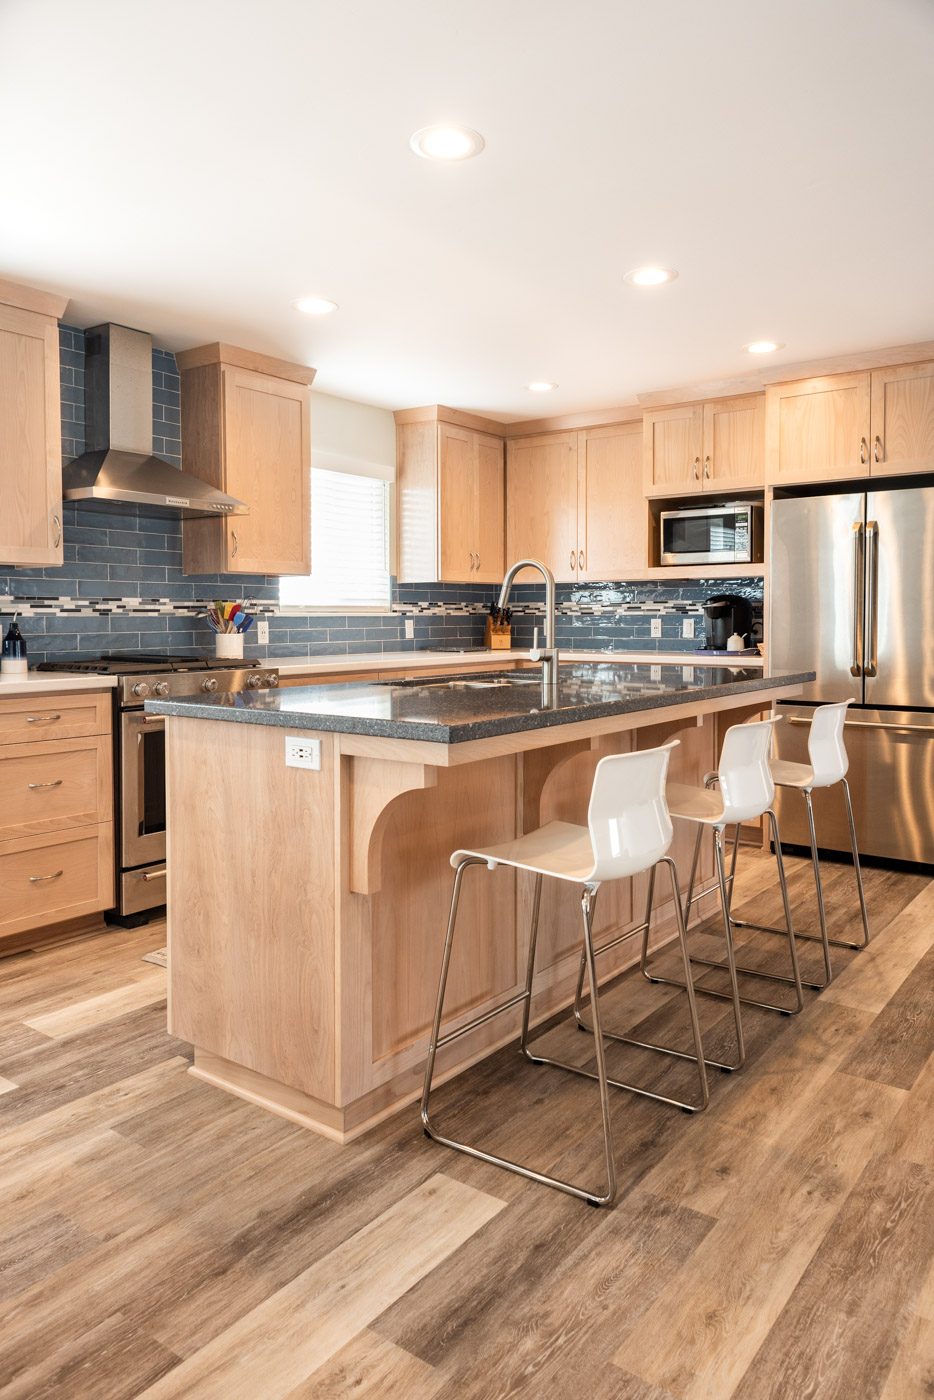 Coastal Contemporary custom kitchen cabinets with natural wood stain and island bar seating